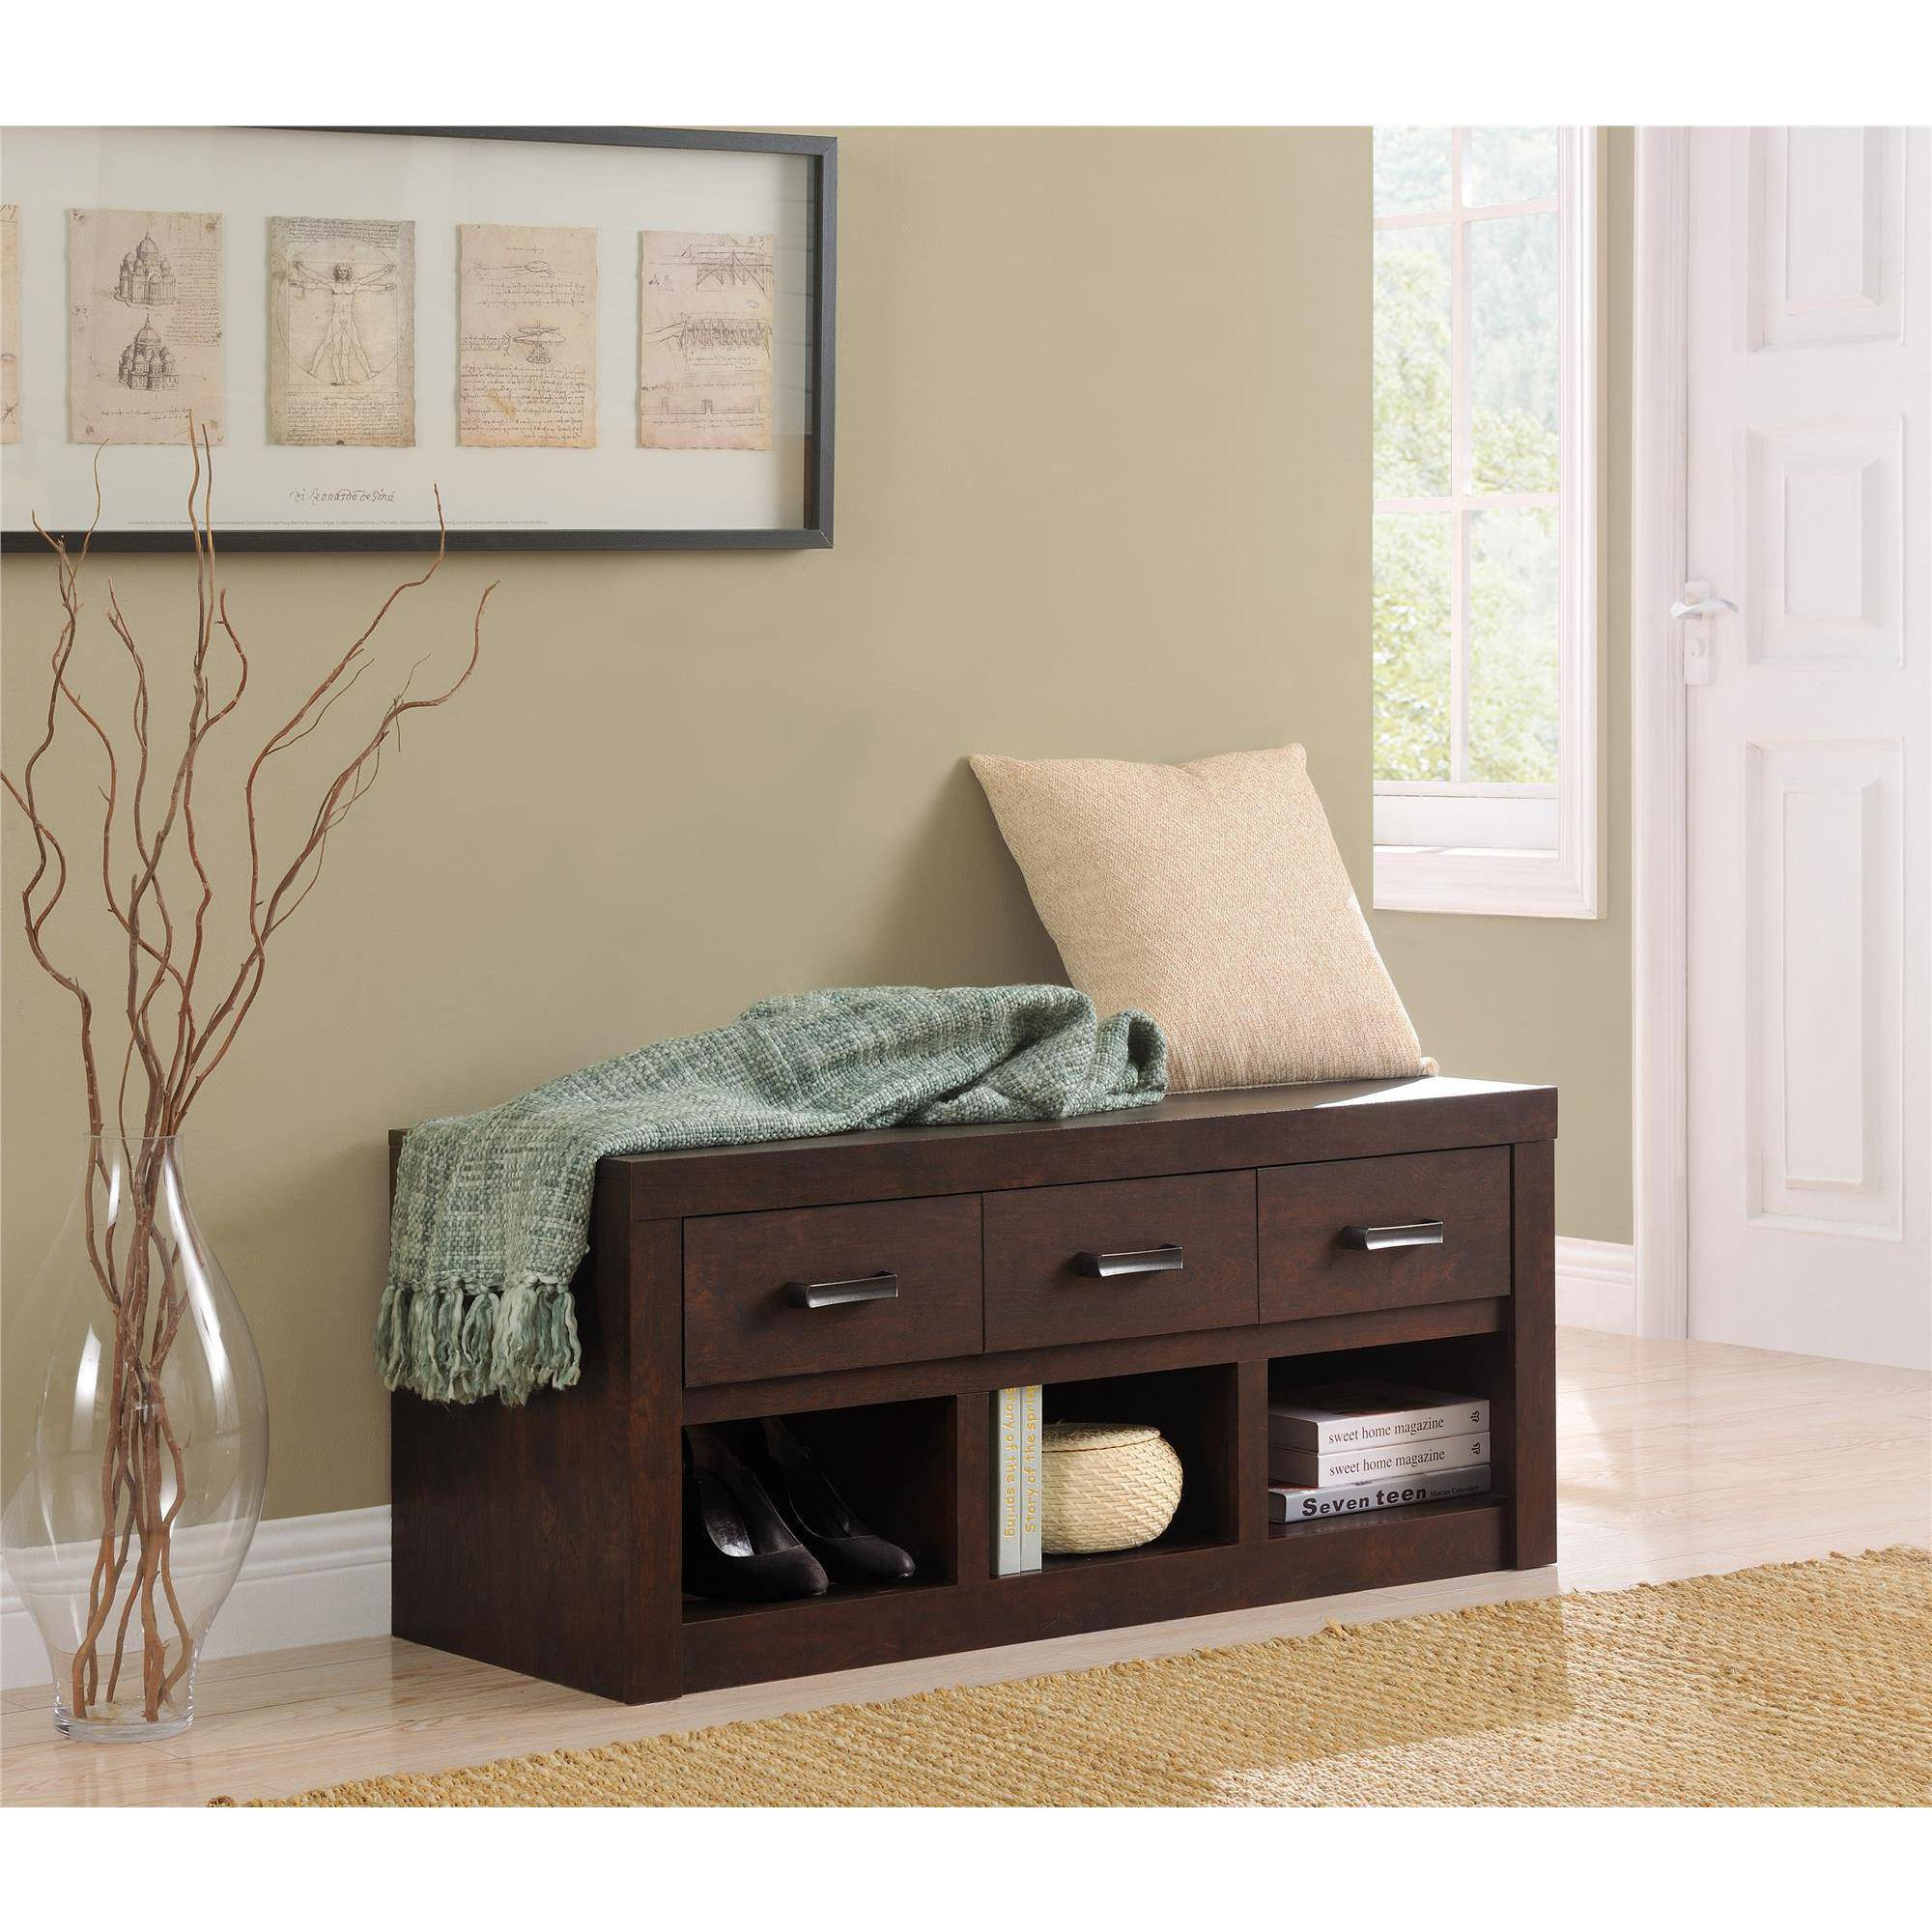 Altra Westbrook Storage Bench, Dark Walnut